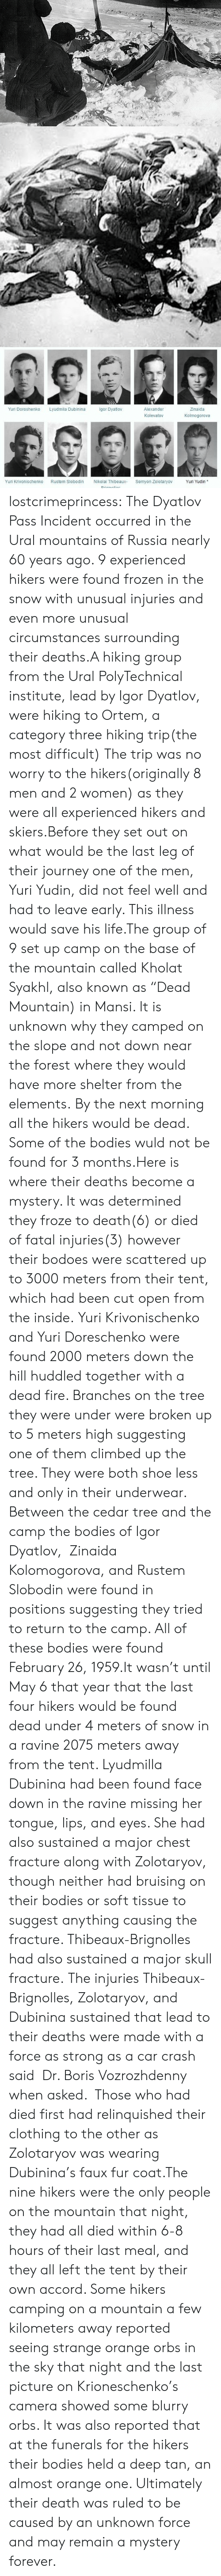 "Bodies , Fire, and Frozen: Yuri Doroshenko  Lyudmila Dubinina  gor Dyatlov  Alexander  Zinaida  Kolmogorova  Kolevatov  Yuri Krivonischenko  Rustem Slobodin  Nikolai Thibeaux-  Semyon Zolotaryov  Yuri Yudin* lostcrimeprincess:  The Dyatlov Pass Incident occurred in the Ural mountains of Russia nearly 60 years ago. 9 experienced hikers were found frozen in the snow with unusual injuries and even more unusual circumstances surrounding their deaths.A hiking group from the Ural PolyTechnical institute, lead by Igor Dyatlov, were hiking to Ortem, a category three hiking trip(the most difficult) The trip was no worry to the hikers(originally 8 men and 2 women) as they were all experienced hikers and skiers.Before they set out on what would be the last leg of their journey one of the men, Yuri Yudin, did not feel well and had to leave early. This illness would save his life.The group of 9 set up camp on the base of the mountain called Kholat Syakhl, also known as ""Dead Mountain) in Mansi. It is unknown why they camped on the slope and not down near the forest where they would have more shelter from the elements. By the next morning all the hikers would be dead. Some of the bodies wuld not be found for 3 months.Here is where their deaths become a mystery. It was determined they froze to death(6) or died of fatal injuries(3) however their bodoes were scattered up to 3000 meters from their tent, which had been cut open from the inside. Yuri Krivonischenko and Yuri Doreschenko were found 2000 meters down the hill huddled together with a dead fire. Branches on the tree they were under were broken up to 5 meters high suggesting one of them climbed up the tree. They were both shoe less and only in their underwear. Between the cedar tree and the camp the bodies of Igor Dyatlov,  Zinaida Kolomogorova, and Rustem Slobodin were found in positions suggesting they tried to return to the camp. All of these bodies were found February 26, 1959.It wasn't until May 6 that year that the last four hikers would be found dead under 4 meters of snow in a ravine 2075 meters away from the tent. Lyudmilla Dubinina had been found face down in the ravine missing her tongue, lips, and eyes. She had also sustained a major chest fracture along with Zolotaryov, though neither had bruising on their bodies or soft tissue to suggest anything causing the fracture.   Thibeaux-Brignolles had also sustained a major skull fracture.  The injuries Thibeaux-Brignolles, Zolotaryov, and Dubinina sustained that lead to their deaths were made with a force as strong as a car crash said  Dr. Boris Vozrozhdenny when asked.     Those who had died first had relinquished their clothing to the other as    Zolotaryov was wearing Dubinina's faux fur coat.The nine hikers were the only people on the mountain that night, they had all died within 6-8 hours of their last meal, and they all left the tent by their own accord. Some hikers camping on a mountain a few kilometers away reported seeing strange orange orbs in the sky that night and the last picture on Krioneschenko's camera showed some blurry orbs. It was also reported that at the funerals for the hikers their bodies held a deep tan, an almost orange one. Ultimately their death was ruled to be caused by an unknown force and may remain a mystery forever."